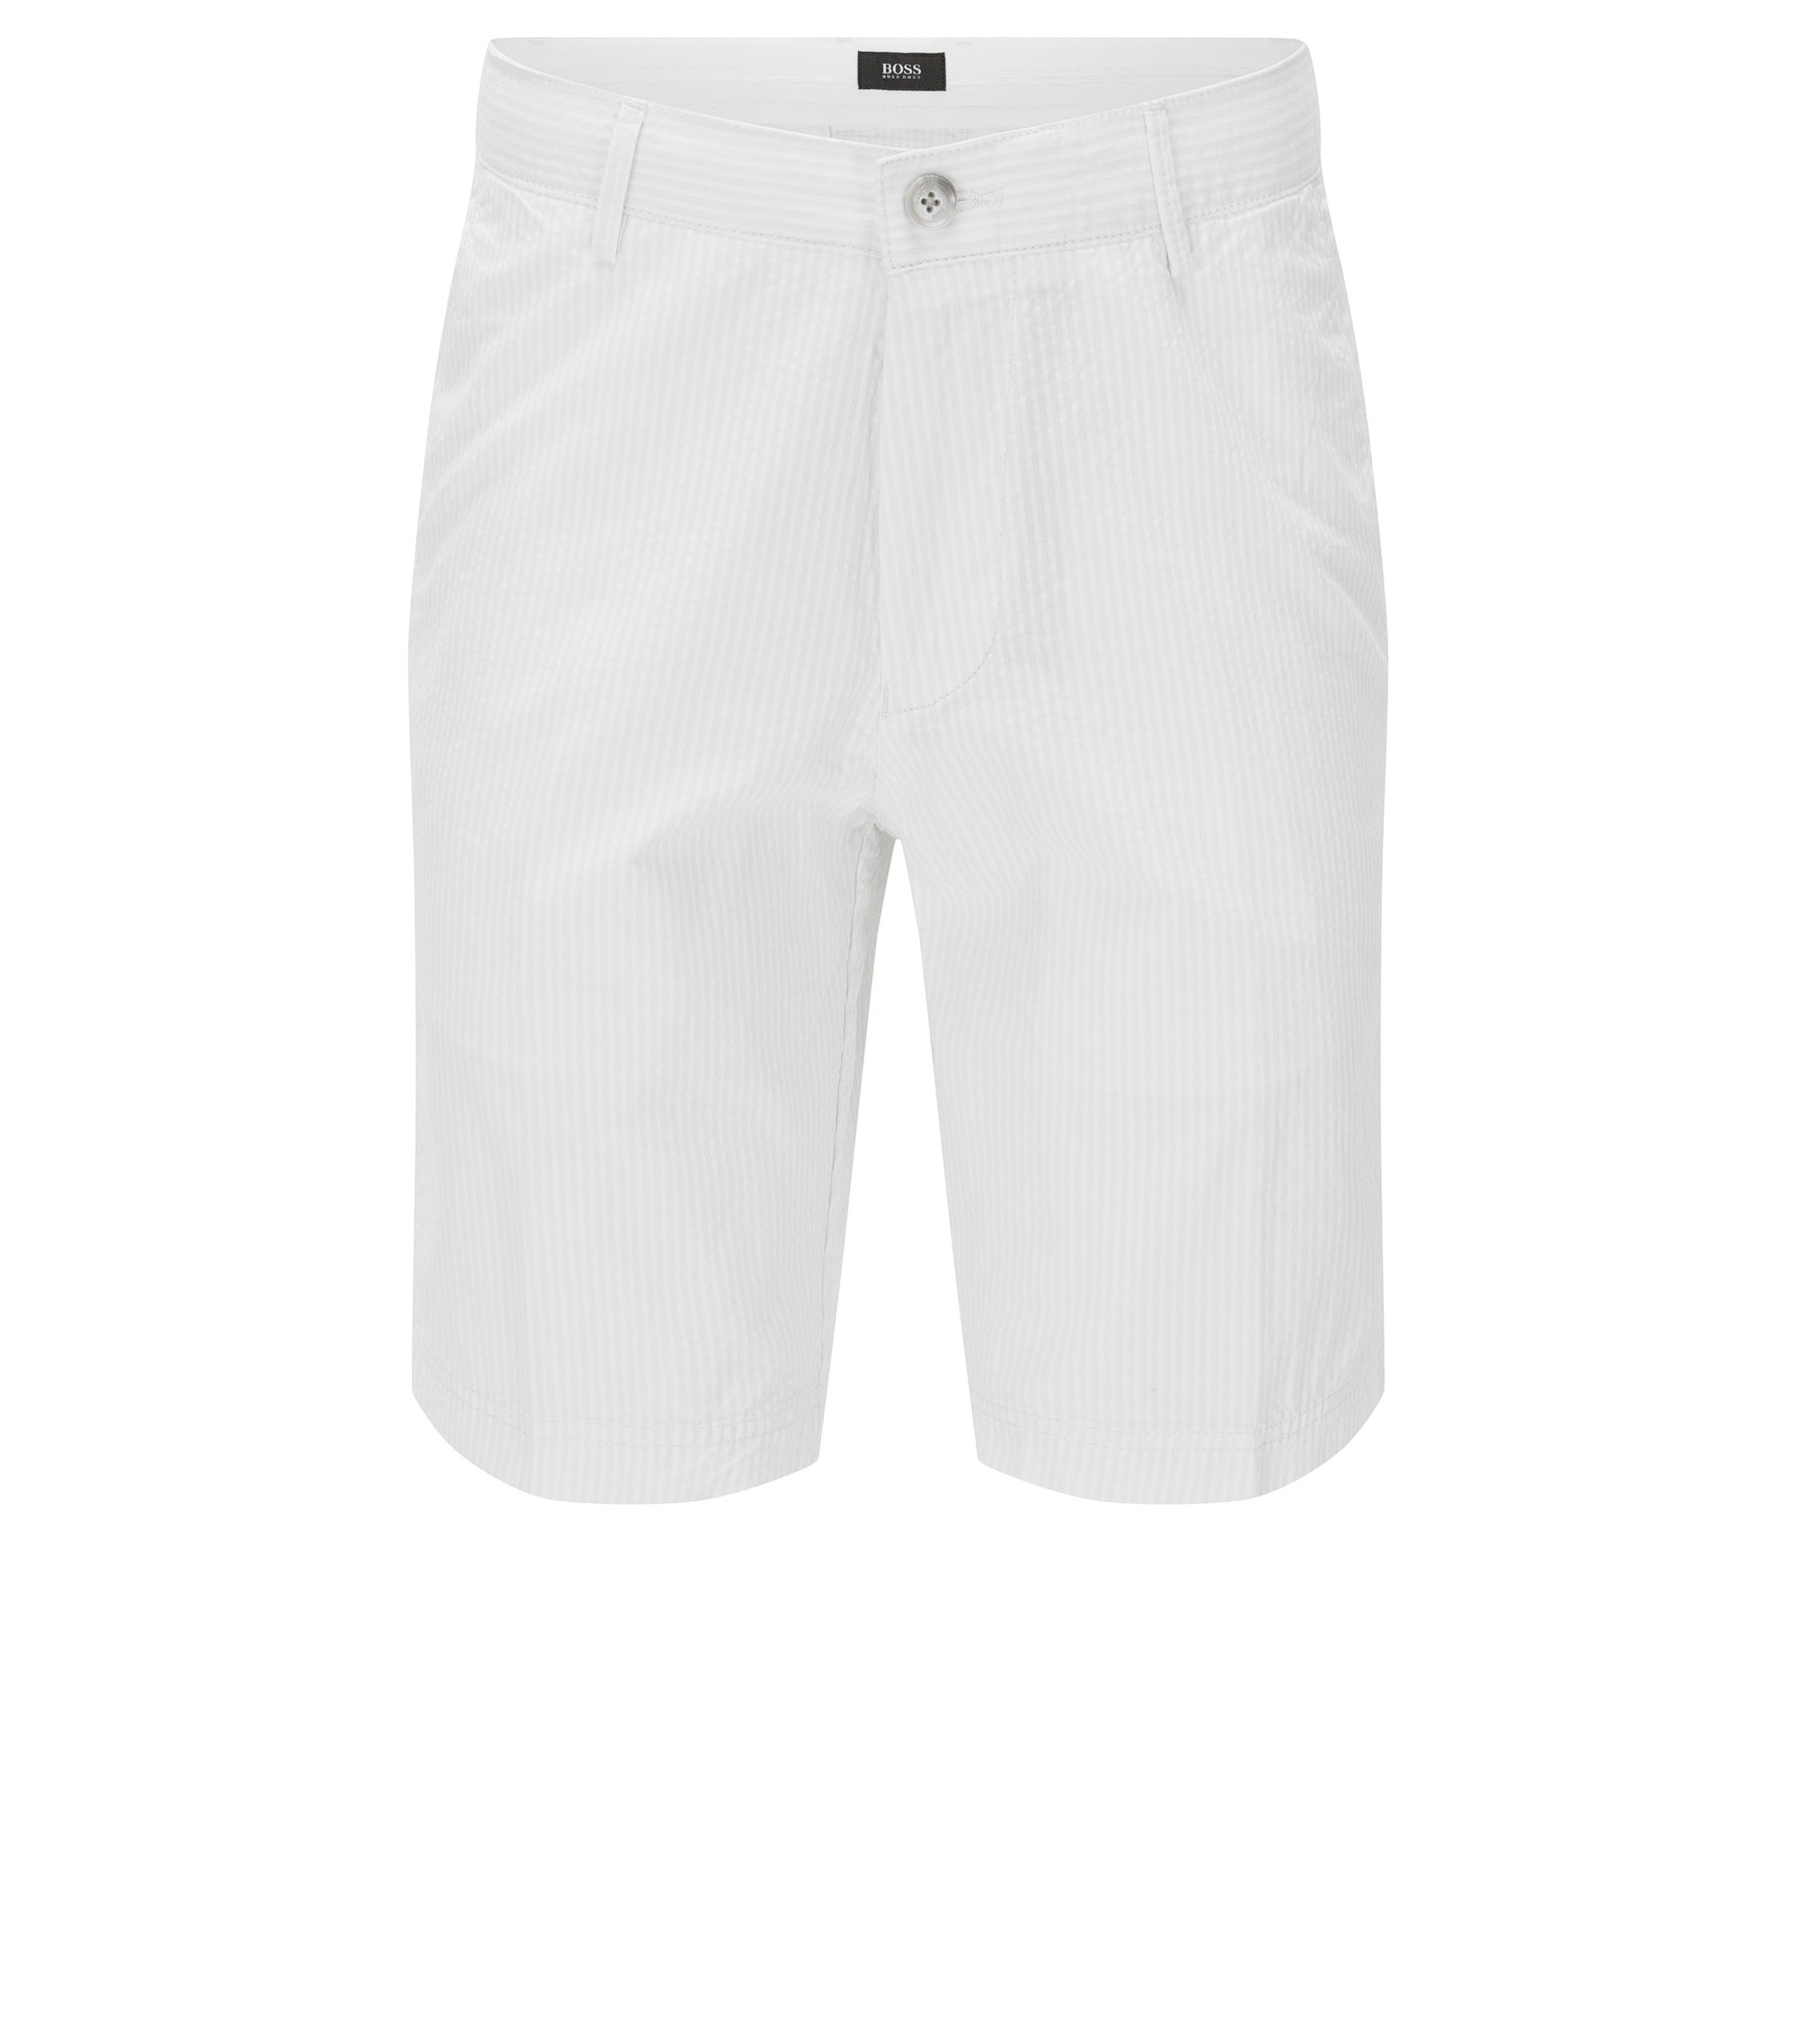 Cotton Tonal Seersucker Short, Regular Fit | Crigan Short W, White